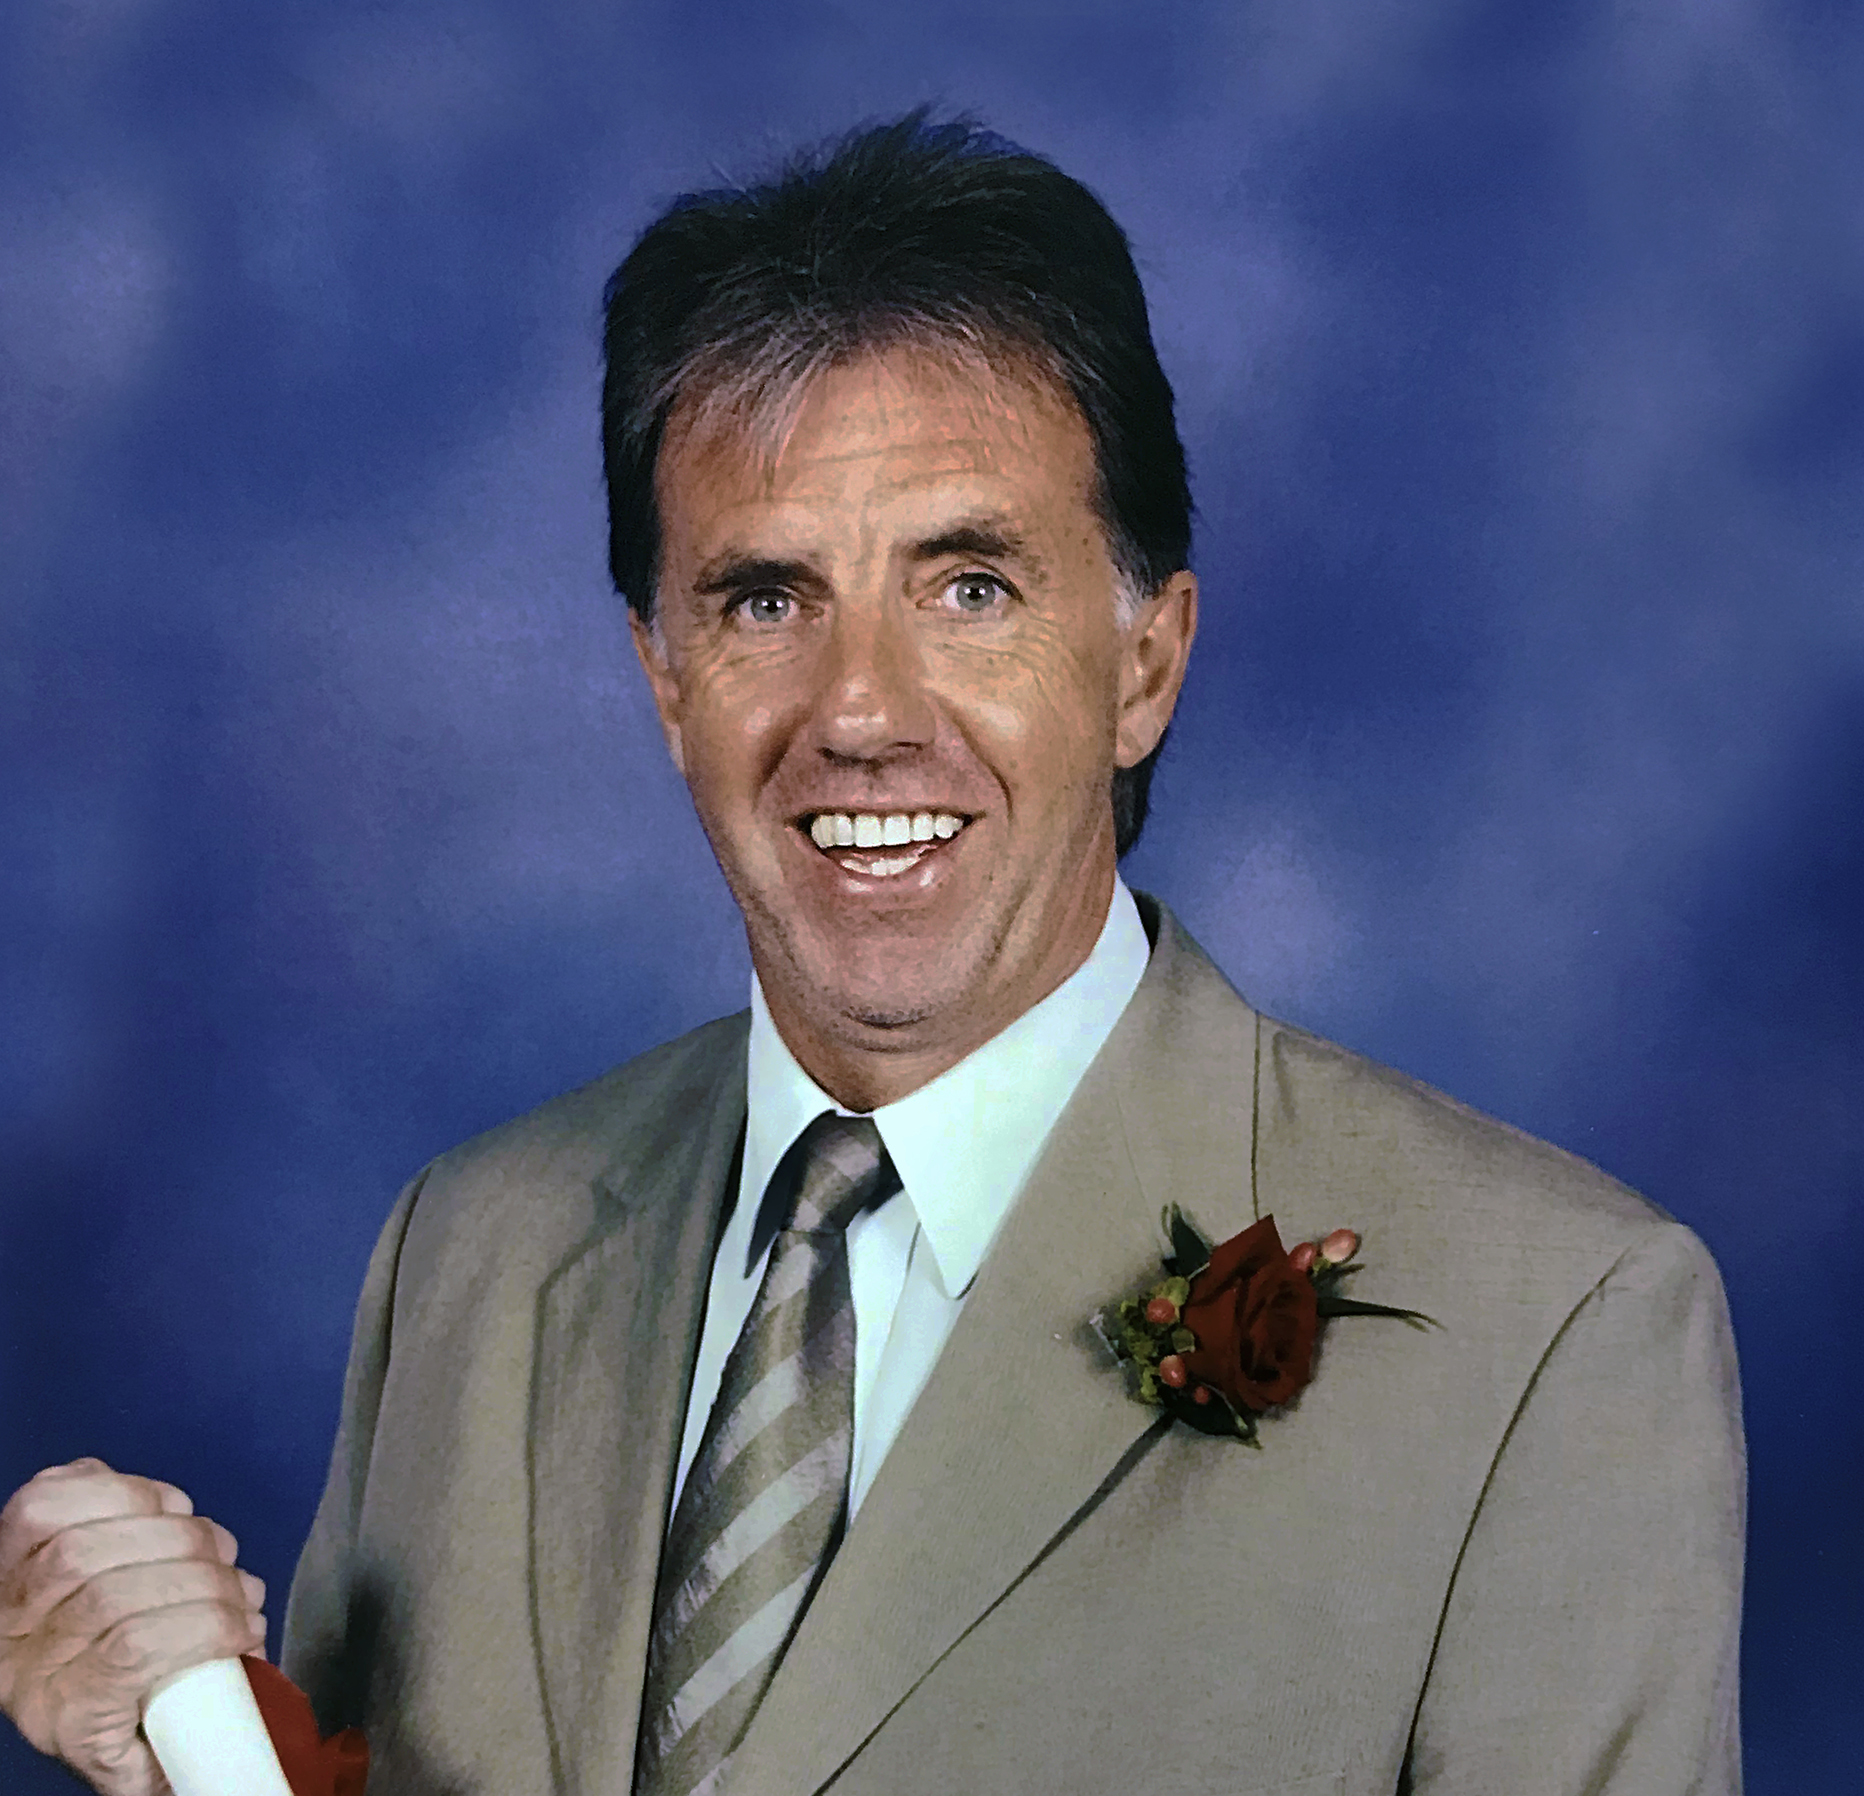 Mark Lawrenson.jpg